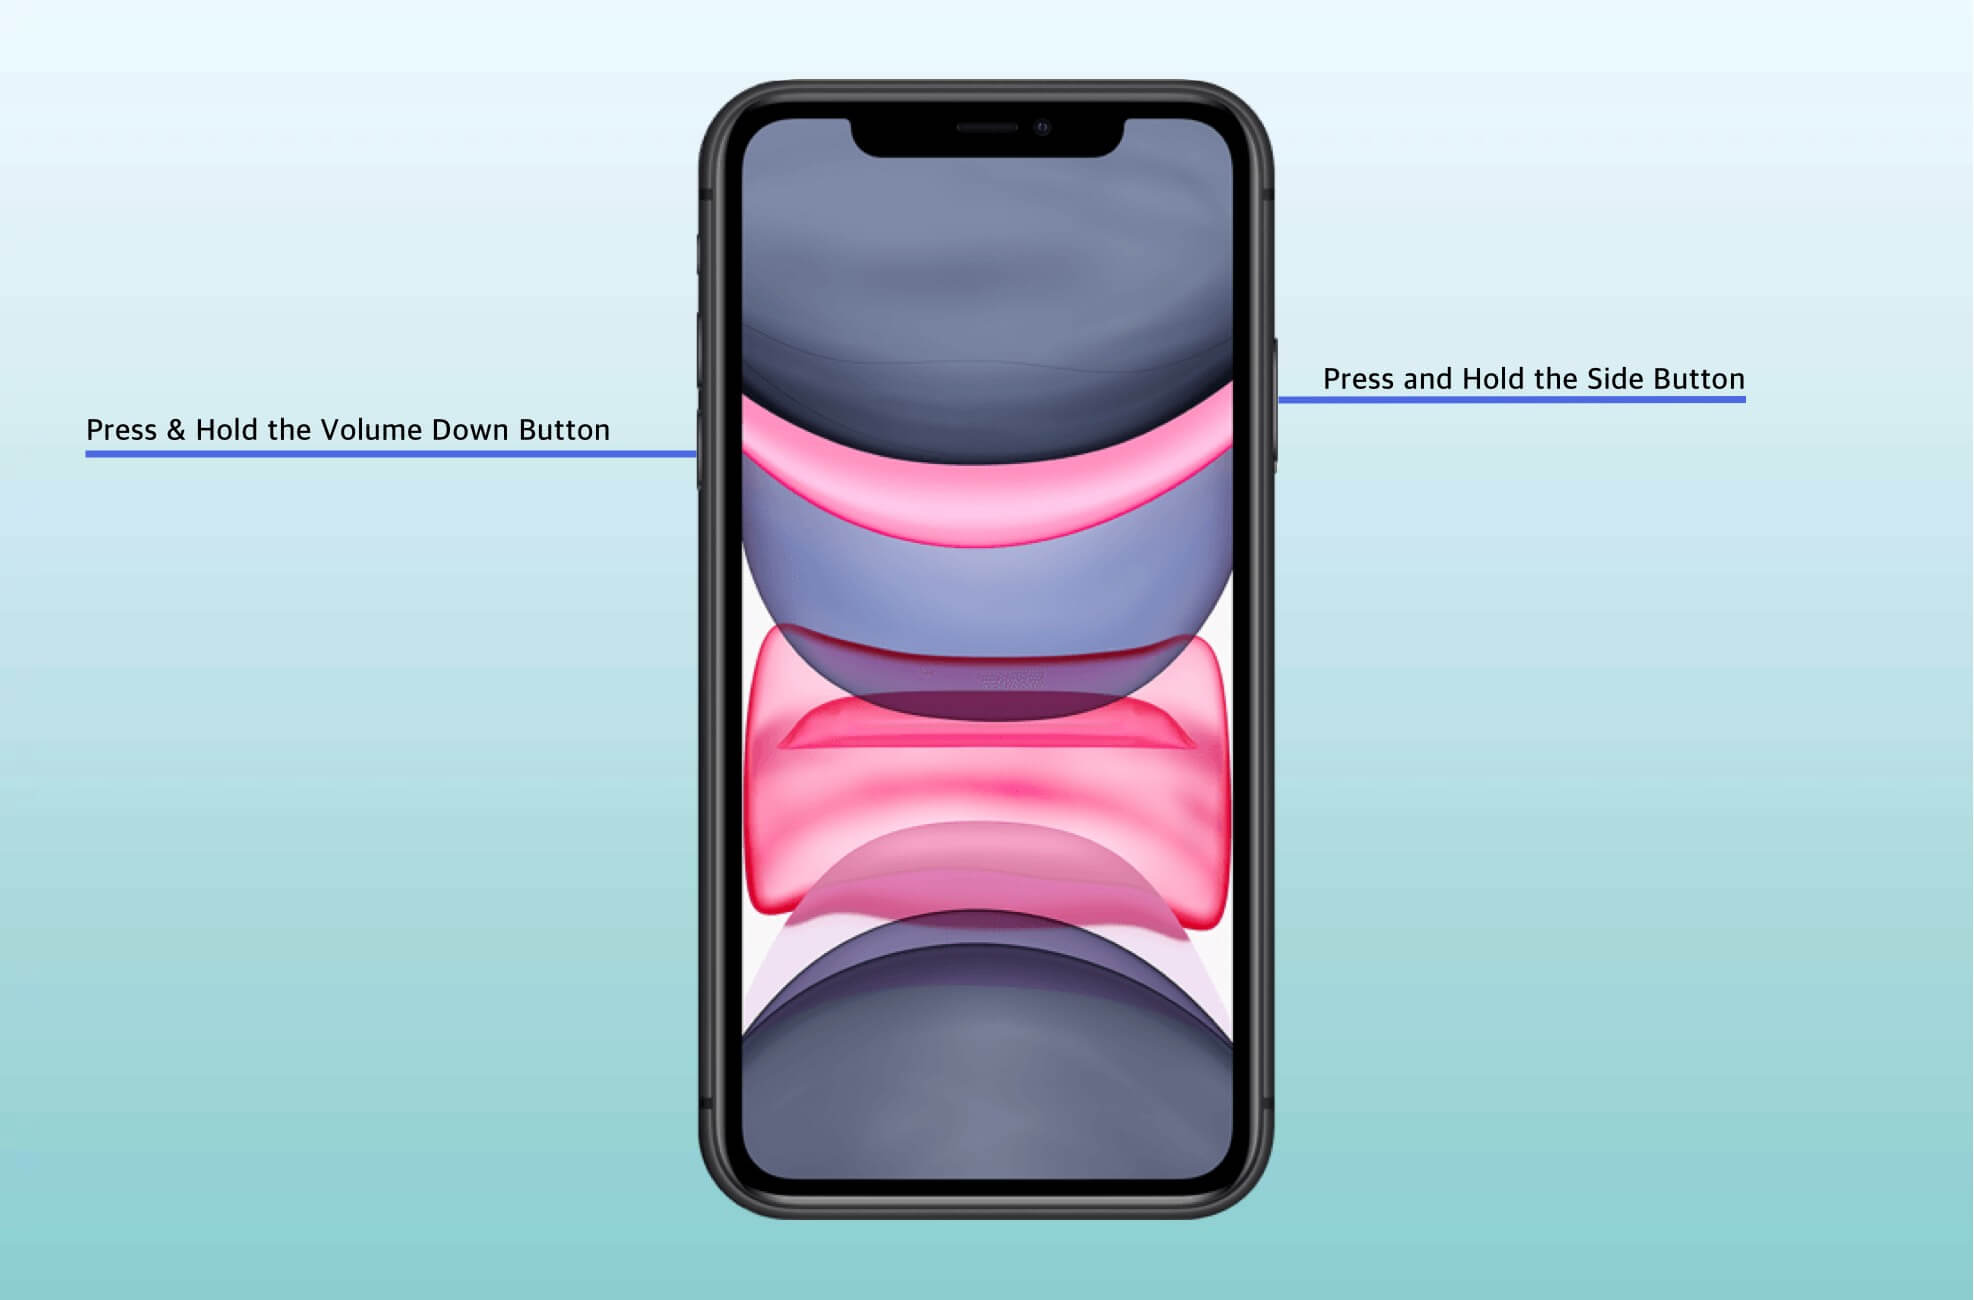 Press & Hold the Side Button Volume Down Button on iPhone 11